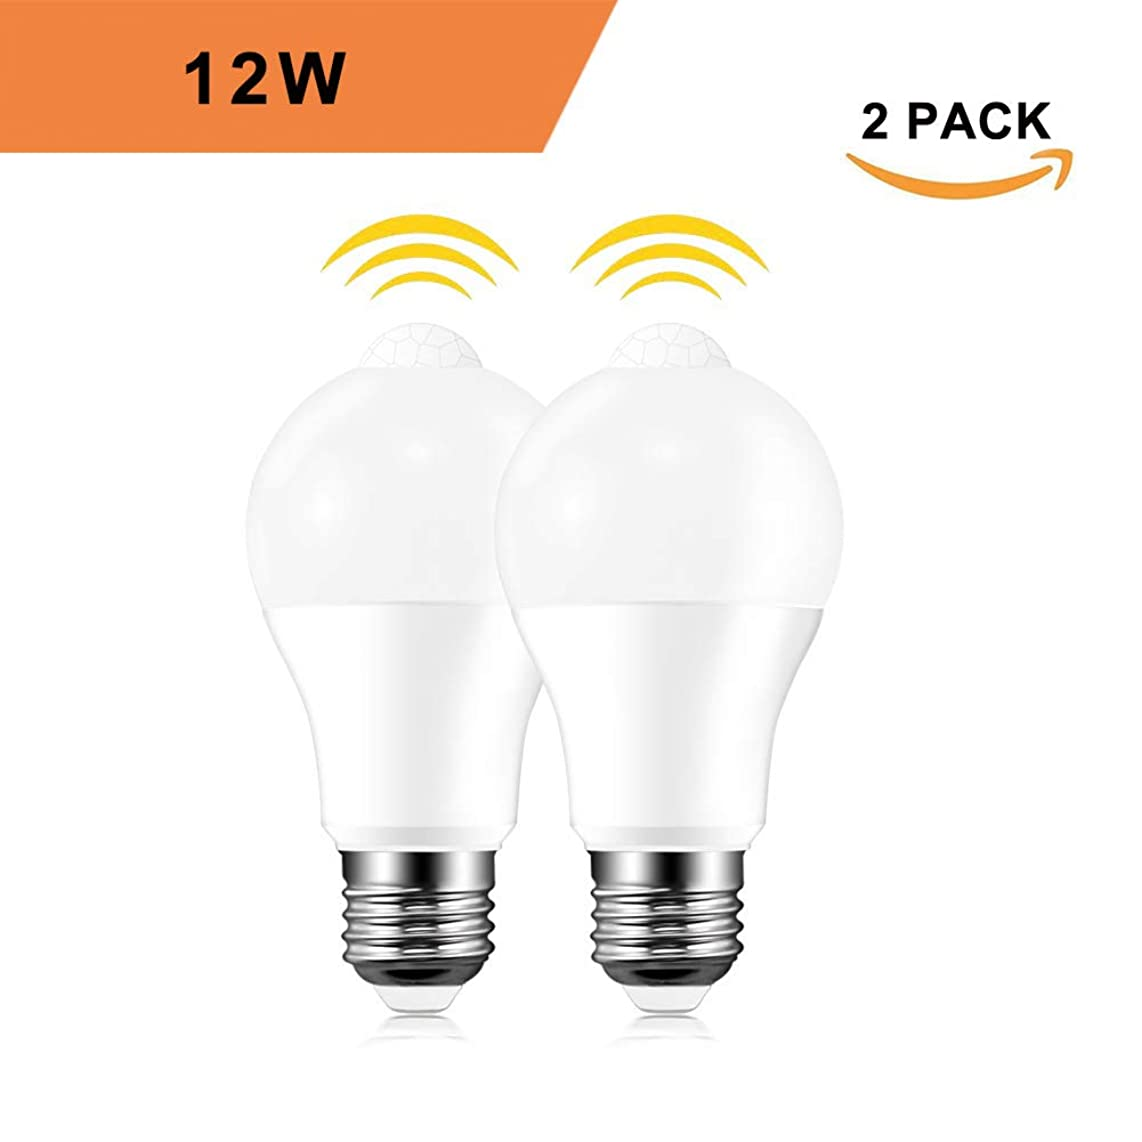 Motion Sensor Light Bulbs, 12W (100-Watt Equivalent) E26 Motion Activated Dusk to Dawn Security Light Bulb Outdoor/Indoor for Front Door Porch Garage Basement Hallway Closet(Cold White 2 Pack)